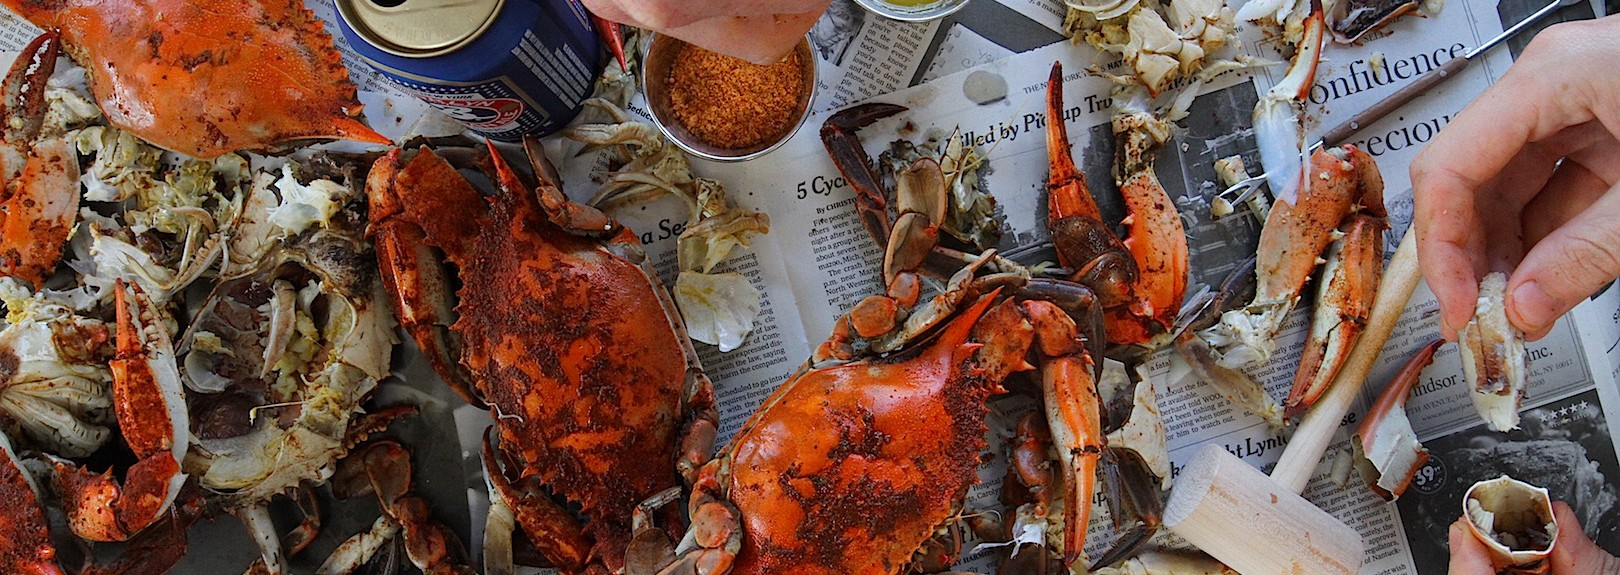 The Best Way to Get Crabs in Louisiana Is on the Bayou